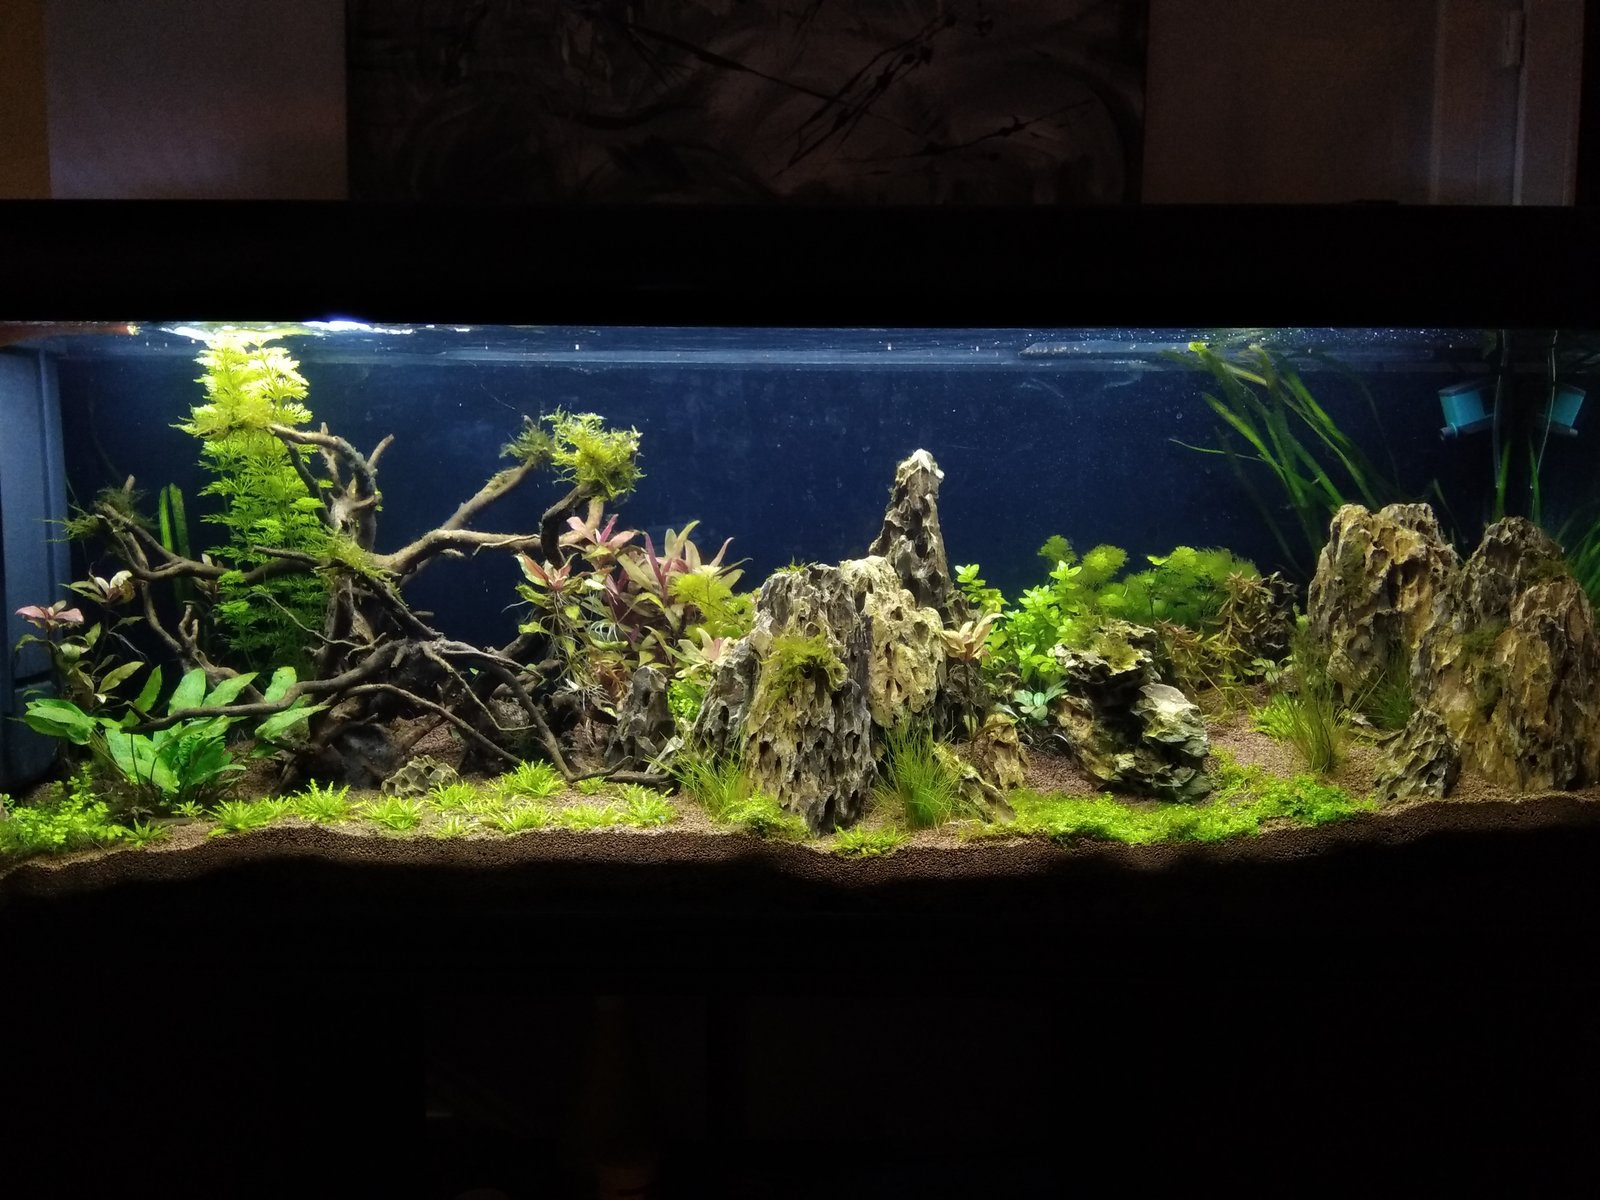 300l brut aquascaping - Page 3 191205080009219217